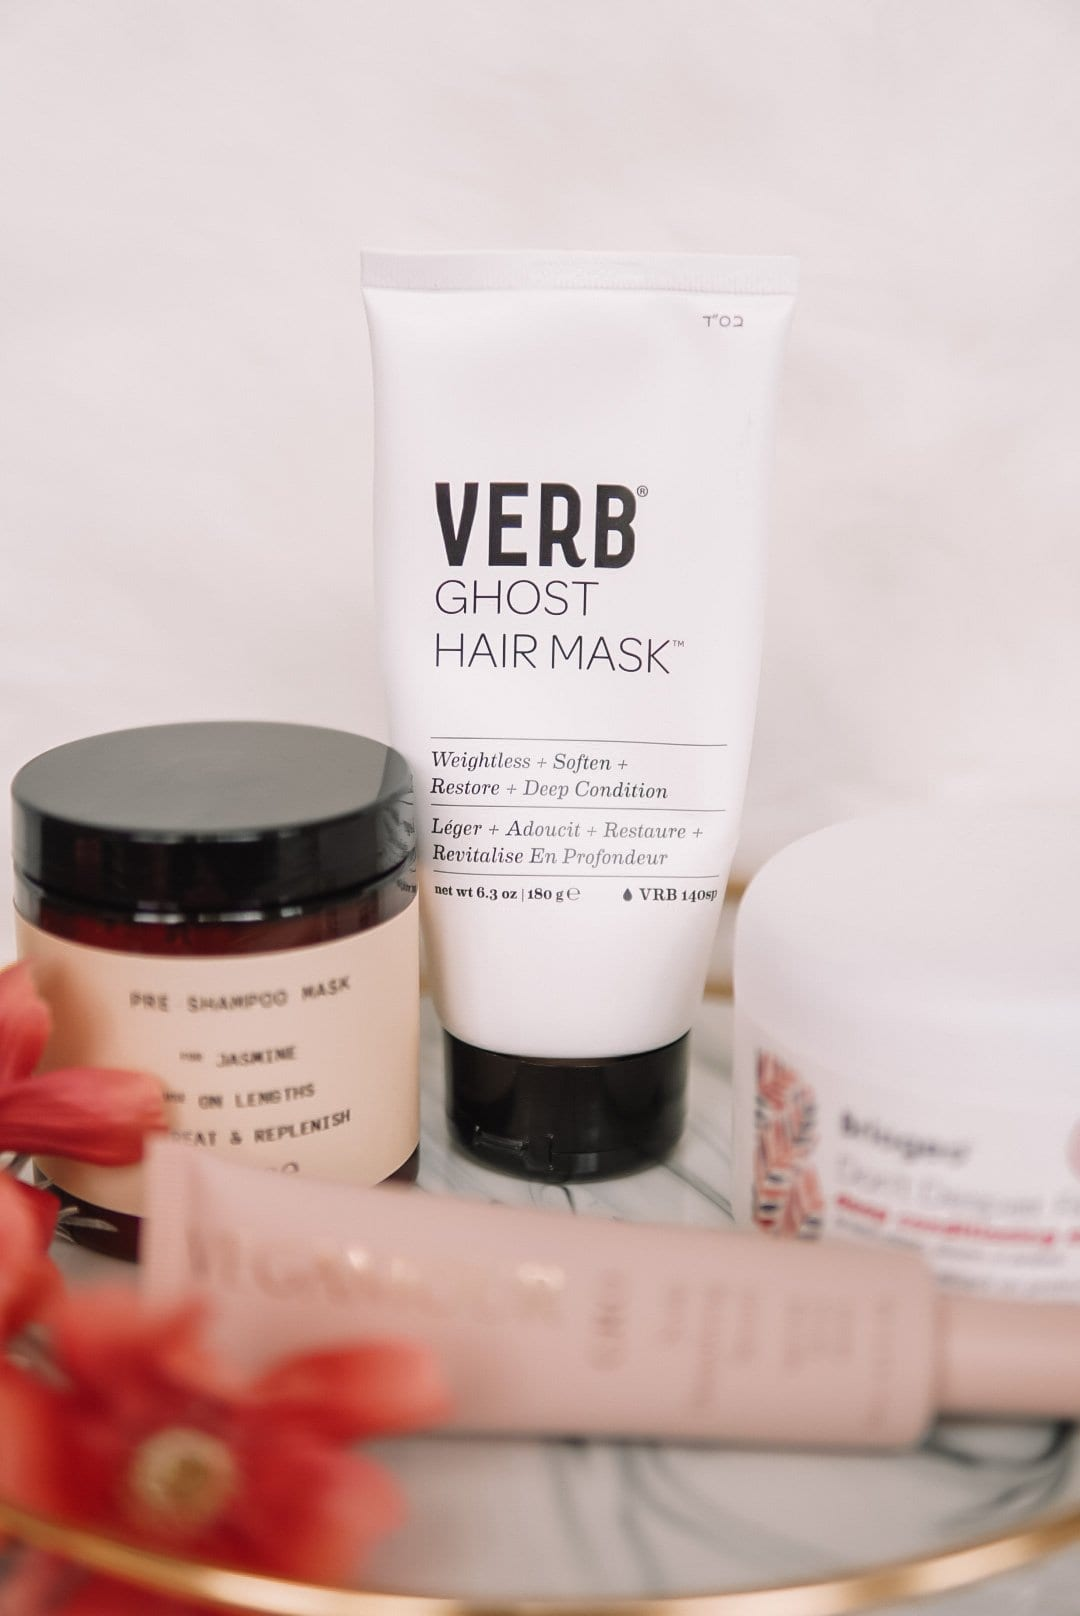 Current Favorite Styling Products for When My Hair is Straight